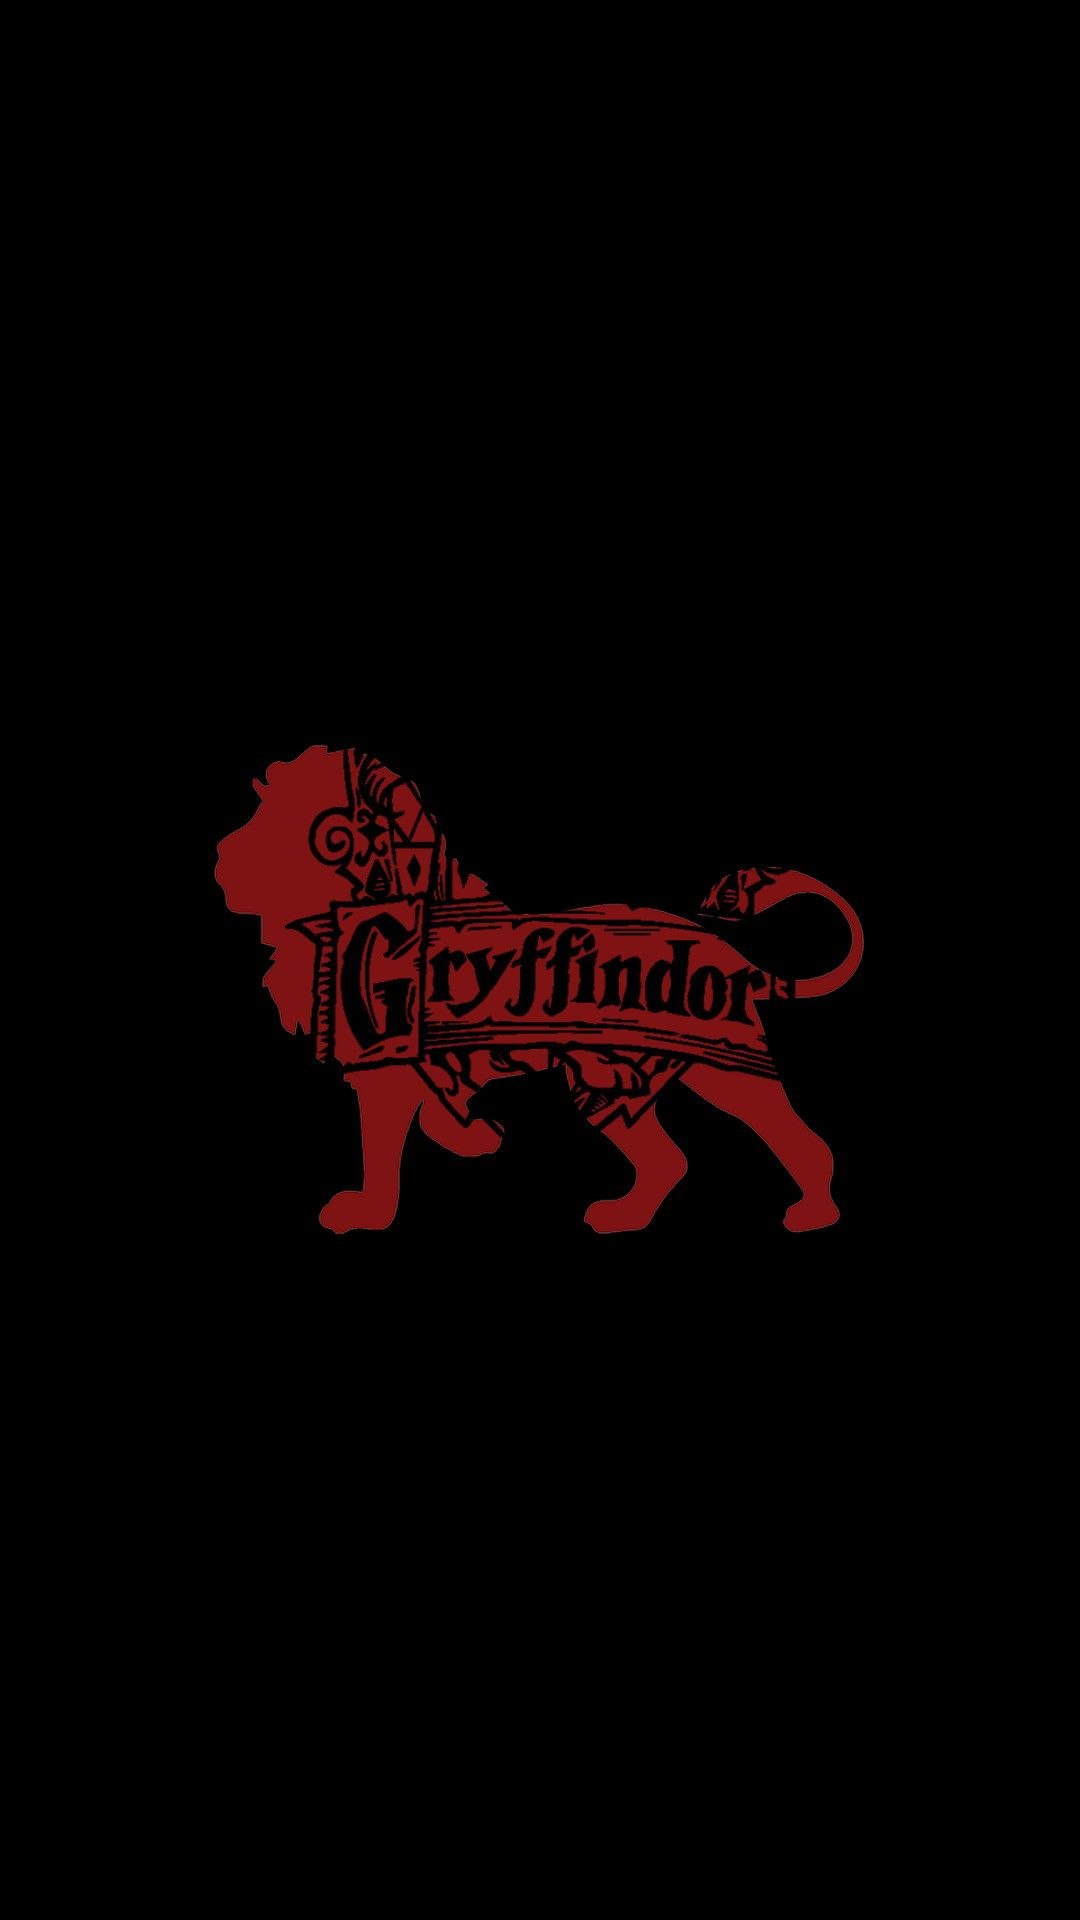 Harry Potter Gryffindor Iphone Wallpapers Top Free Harry Potter